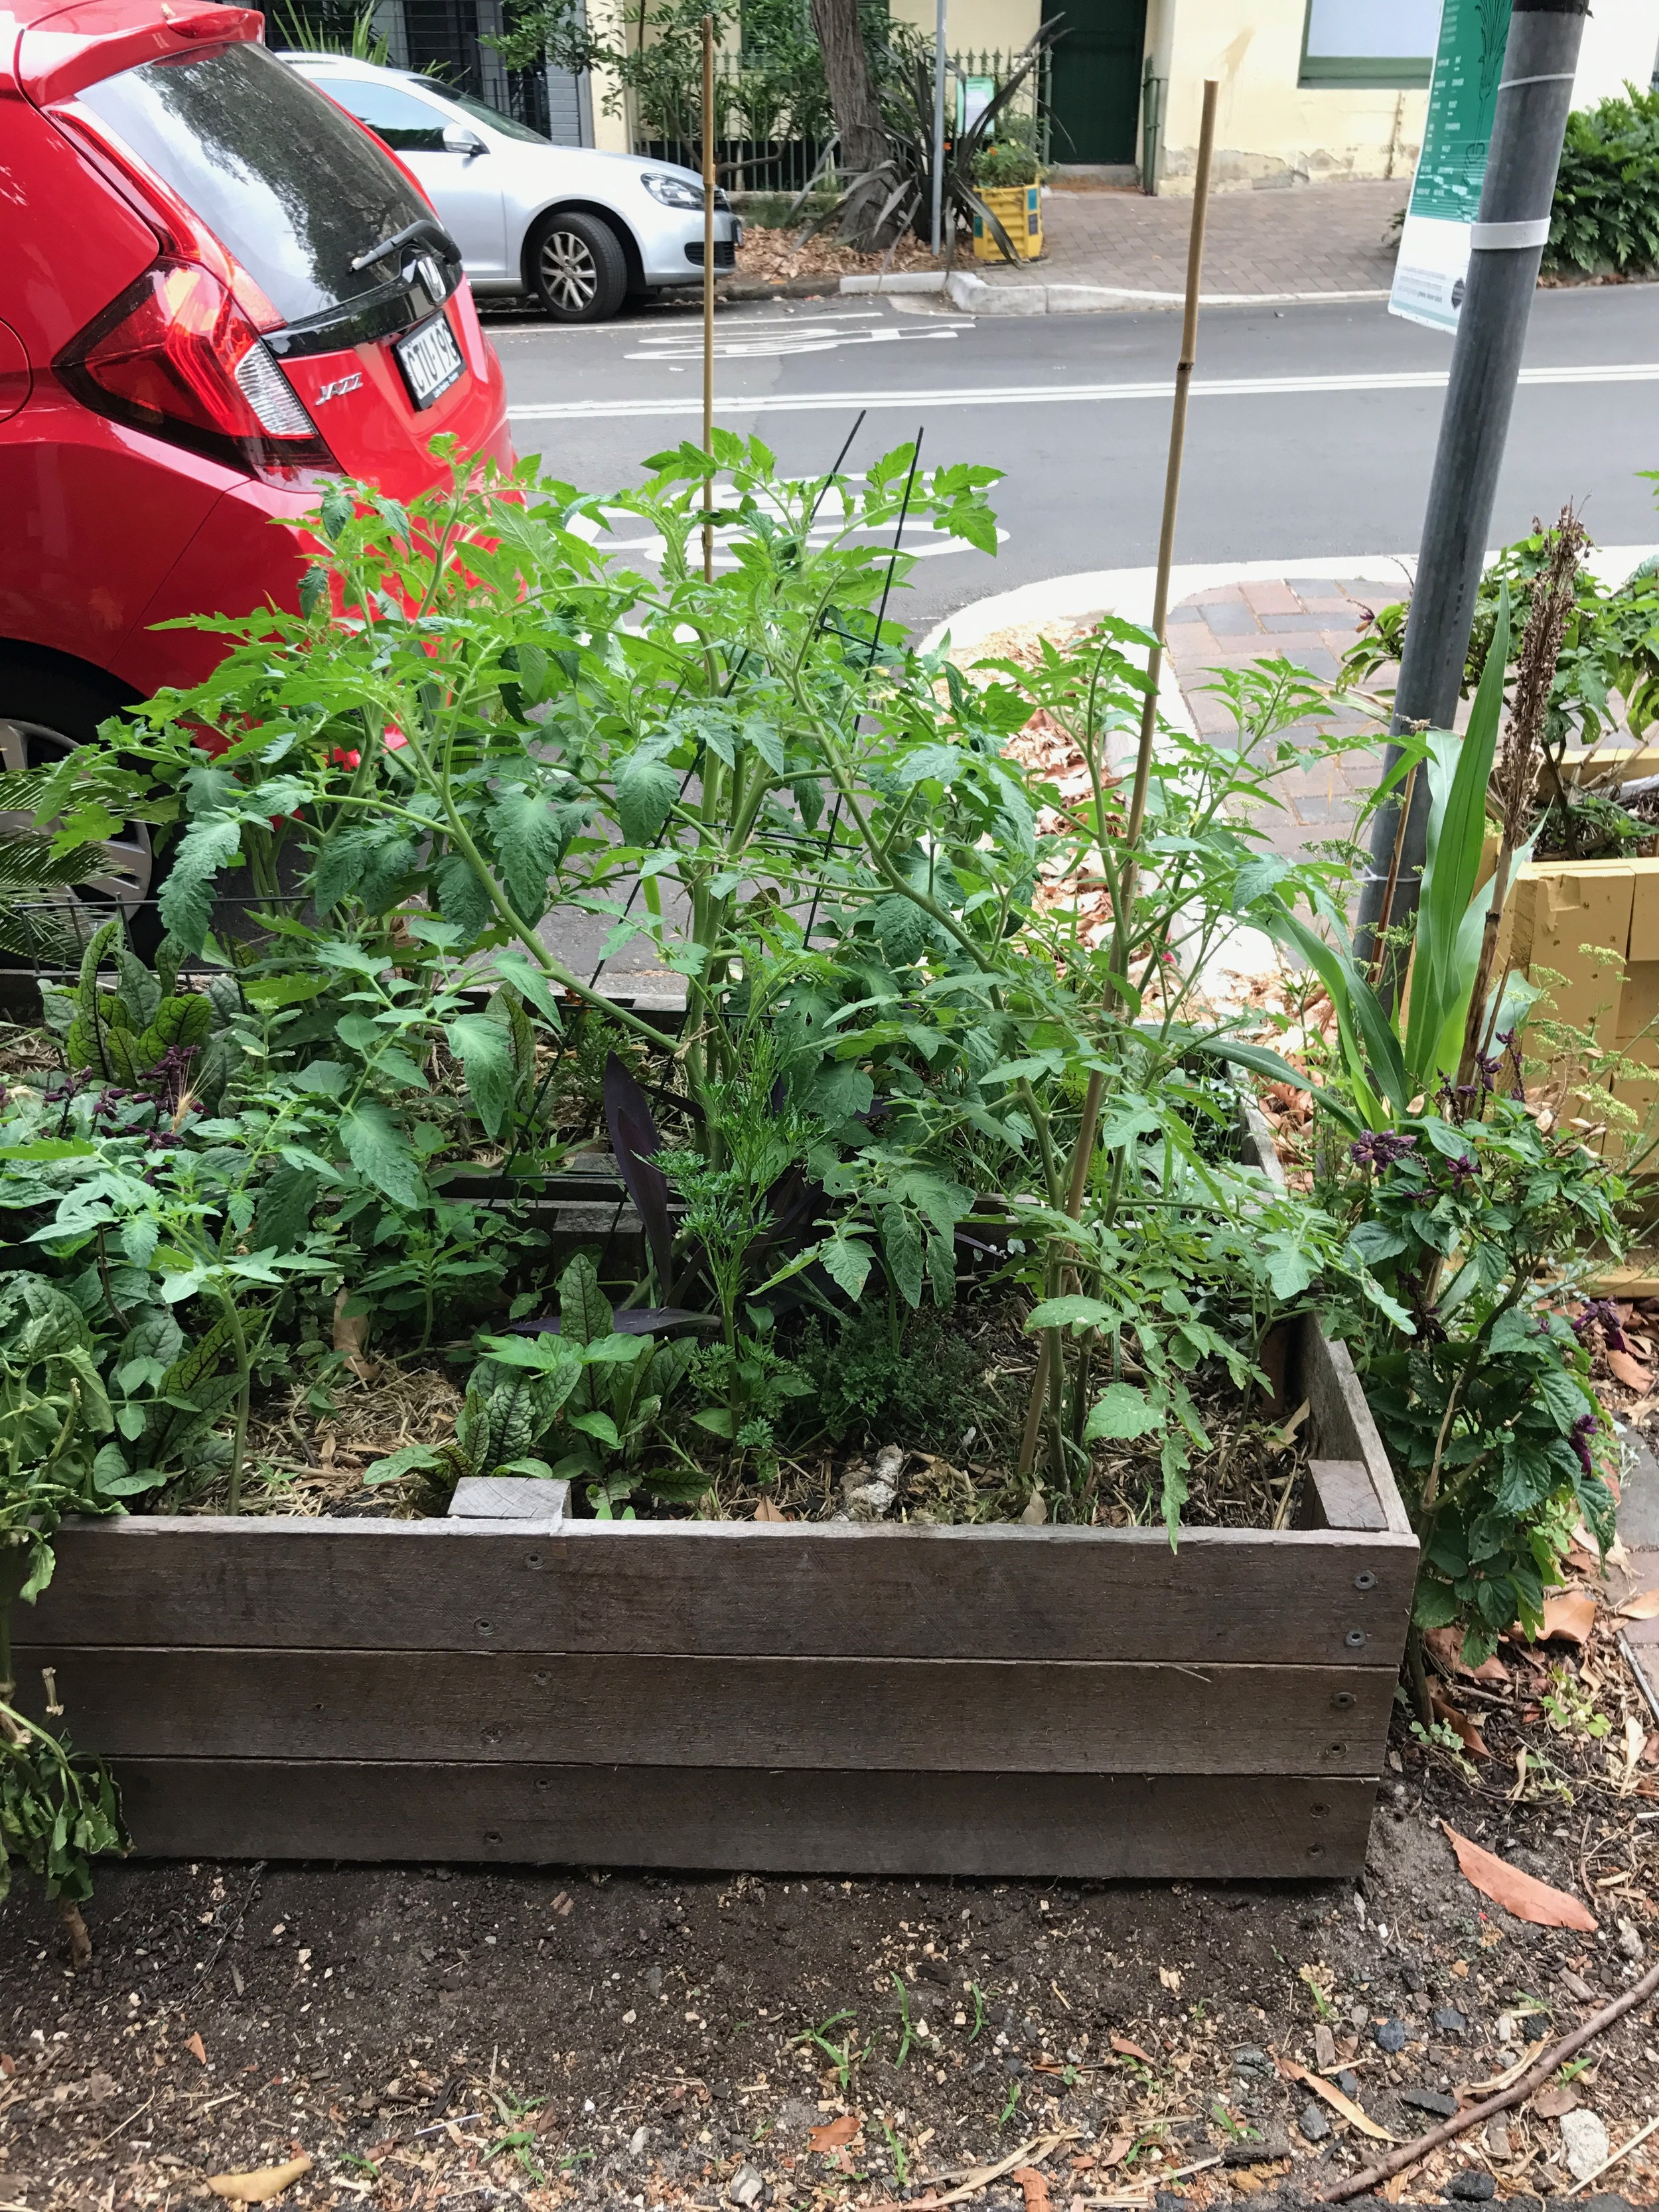 Transplanted Tomato Plants into Garden Beds